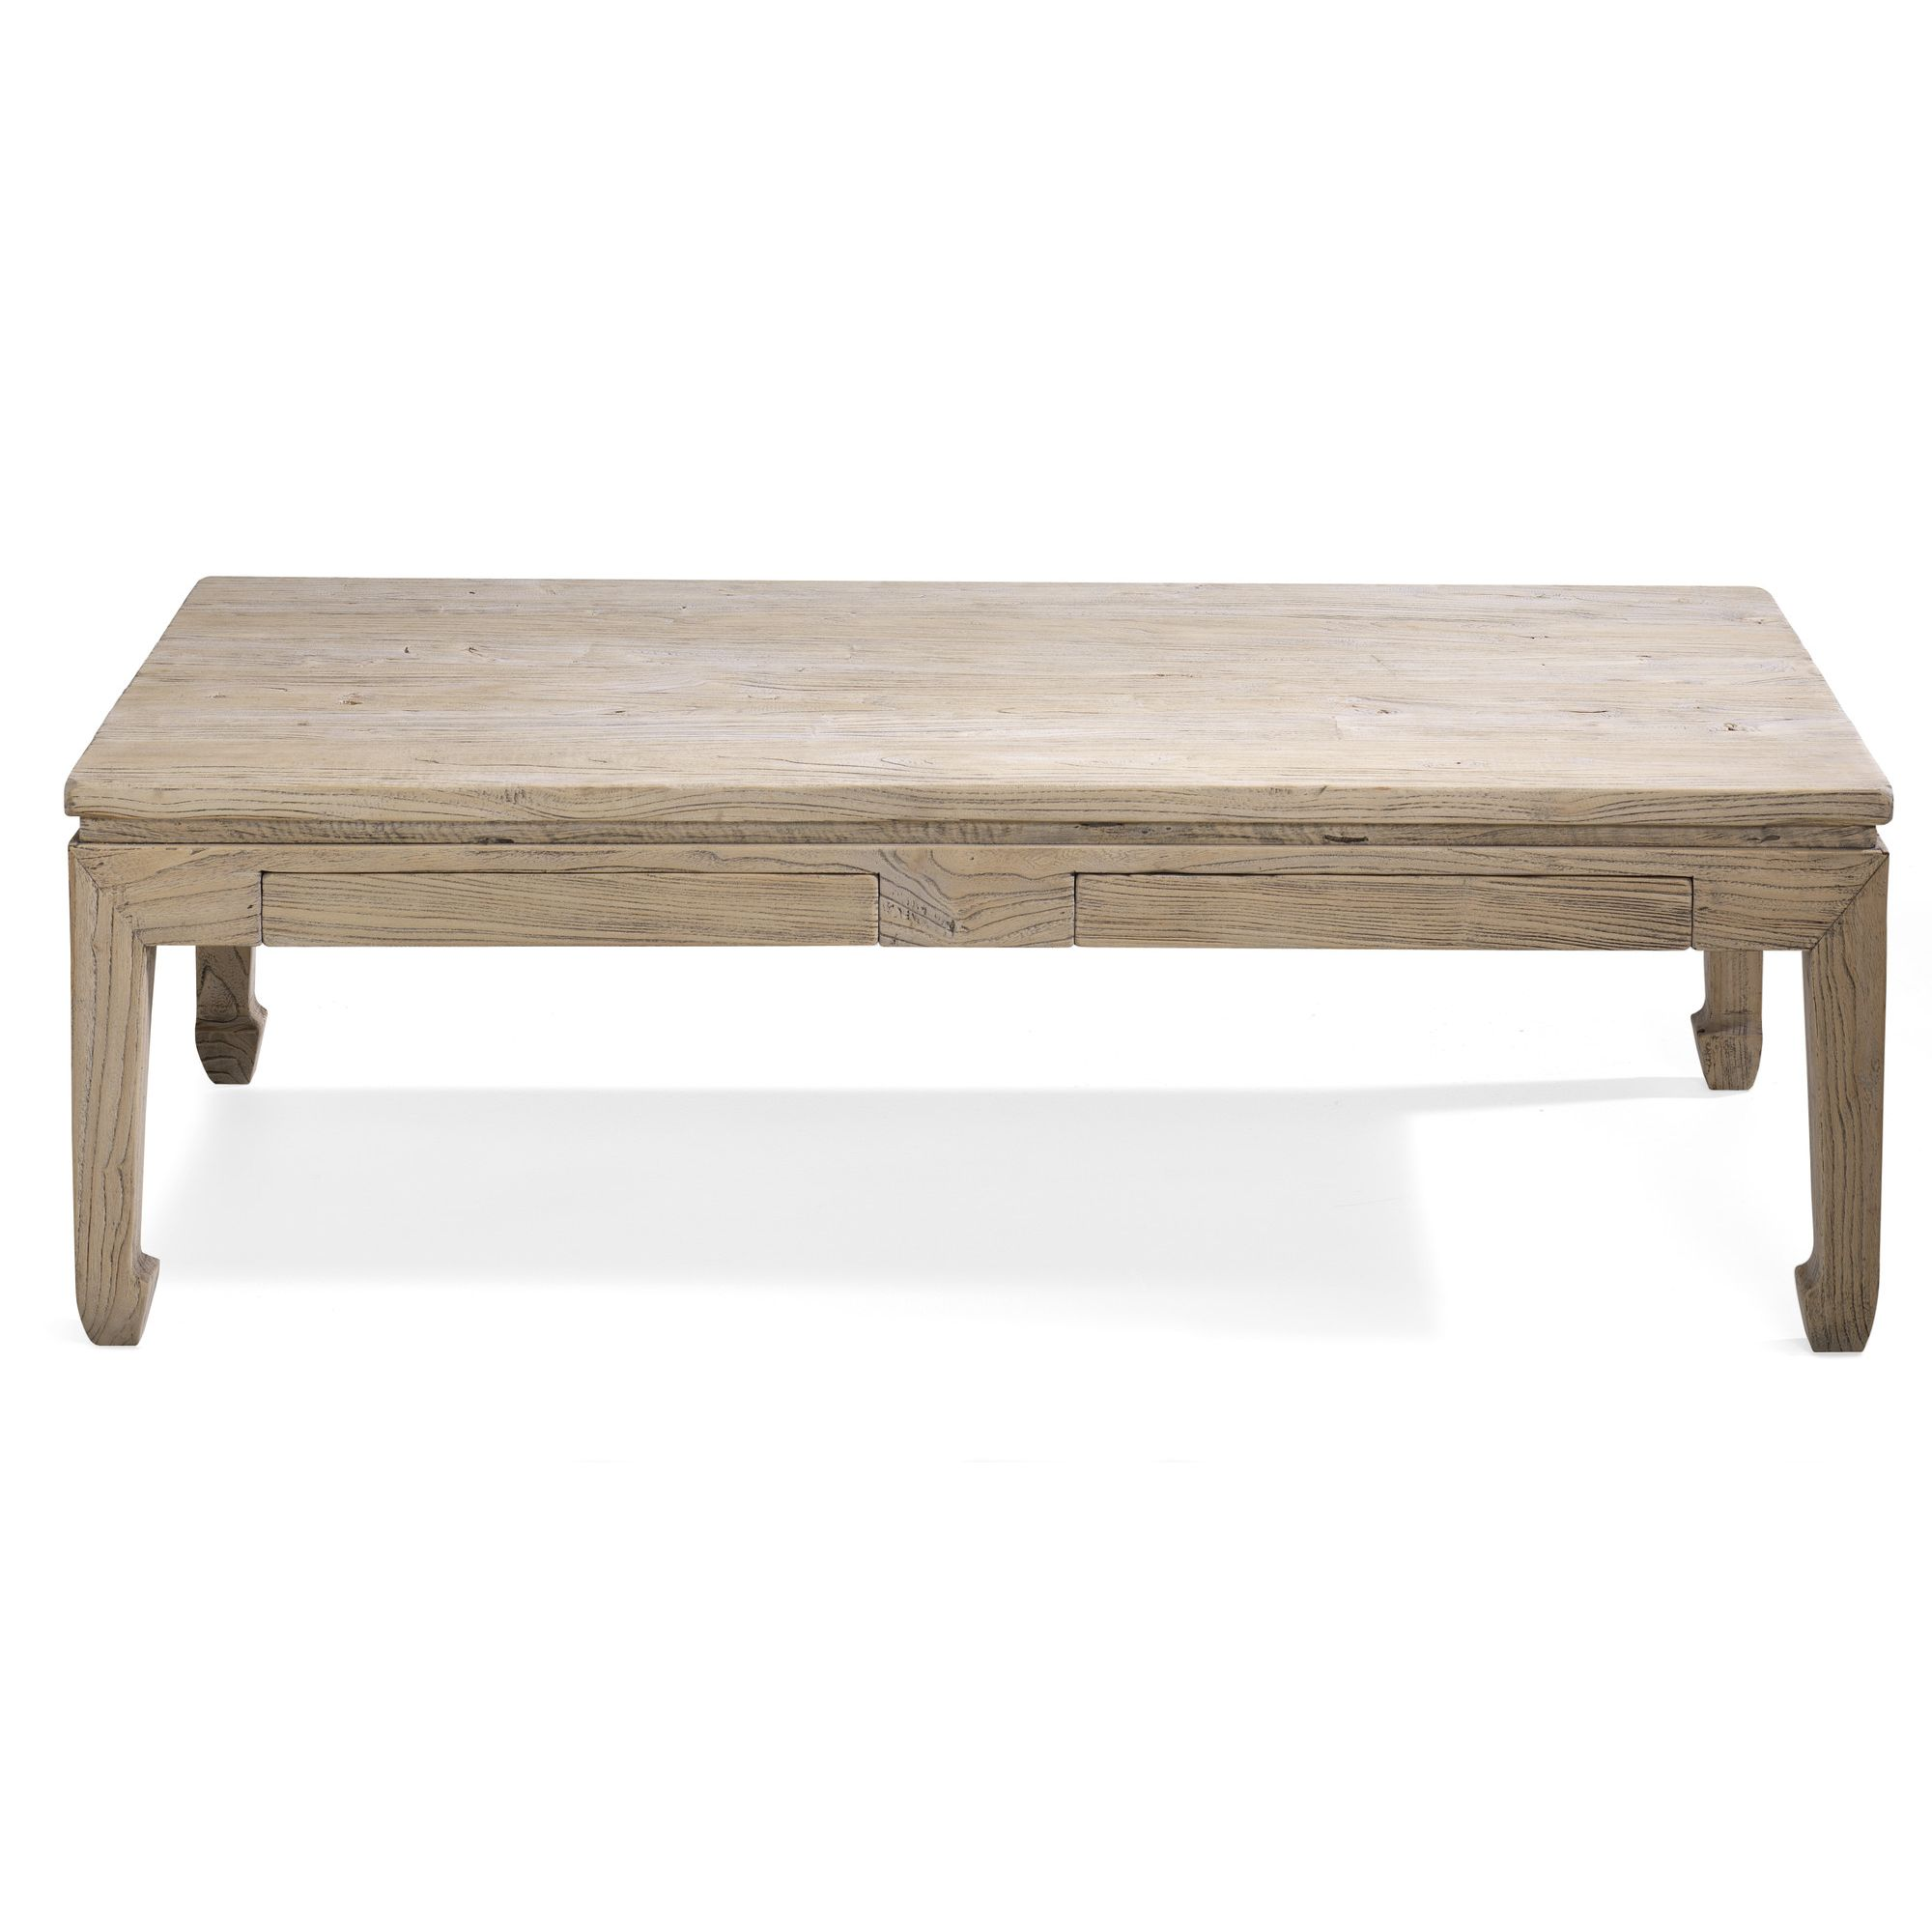 Shimu Chinese Country Furniture Two Drawer Coffee Table at Tesco Direct